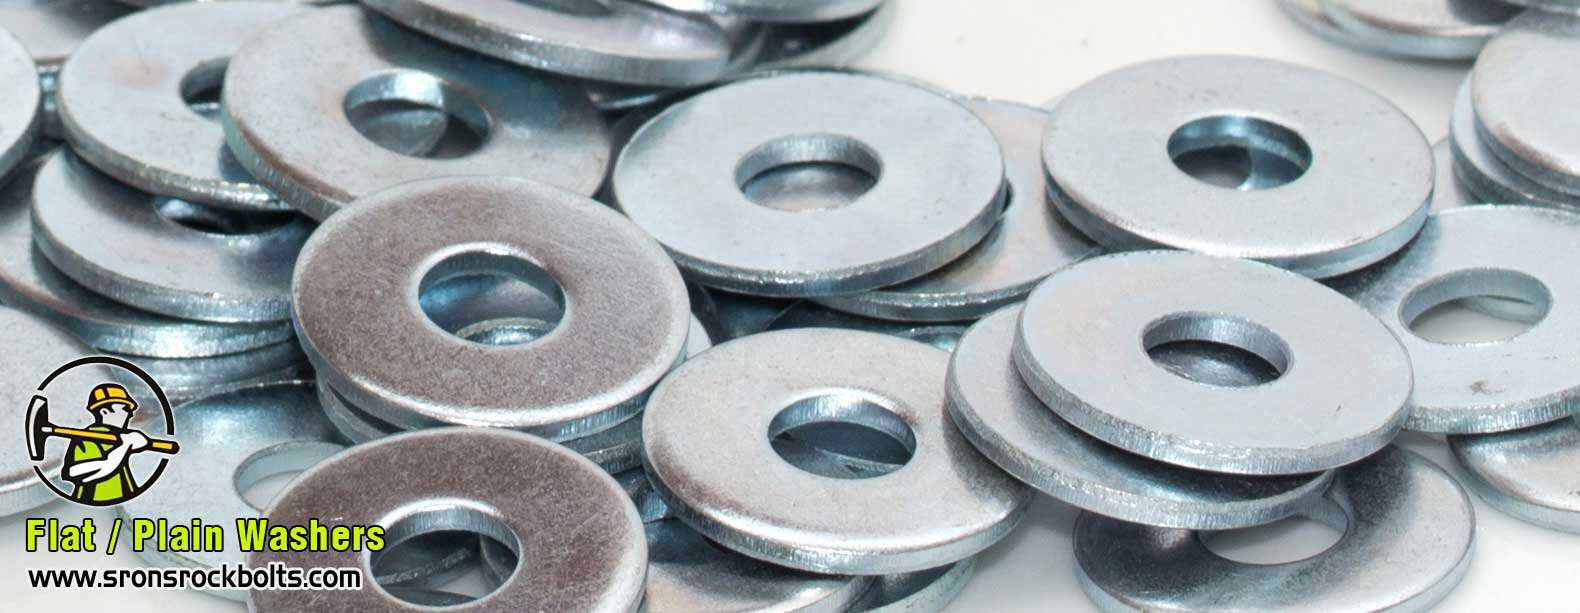 plain washers flat washers din 125 washers manufacturers exporters in India Punjab Ludhiana